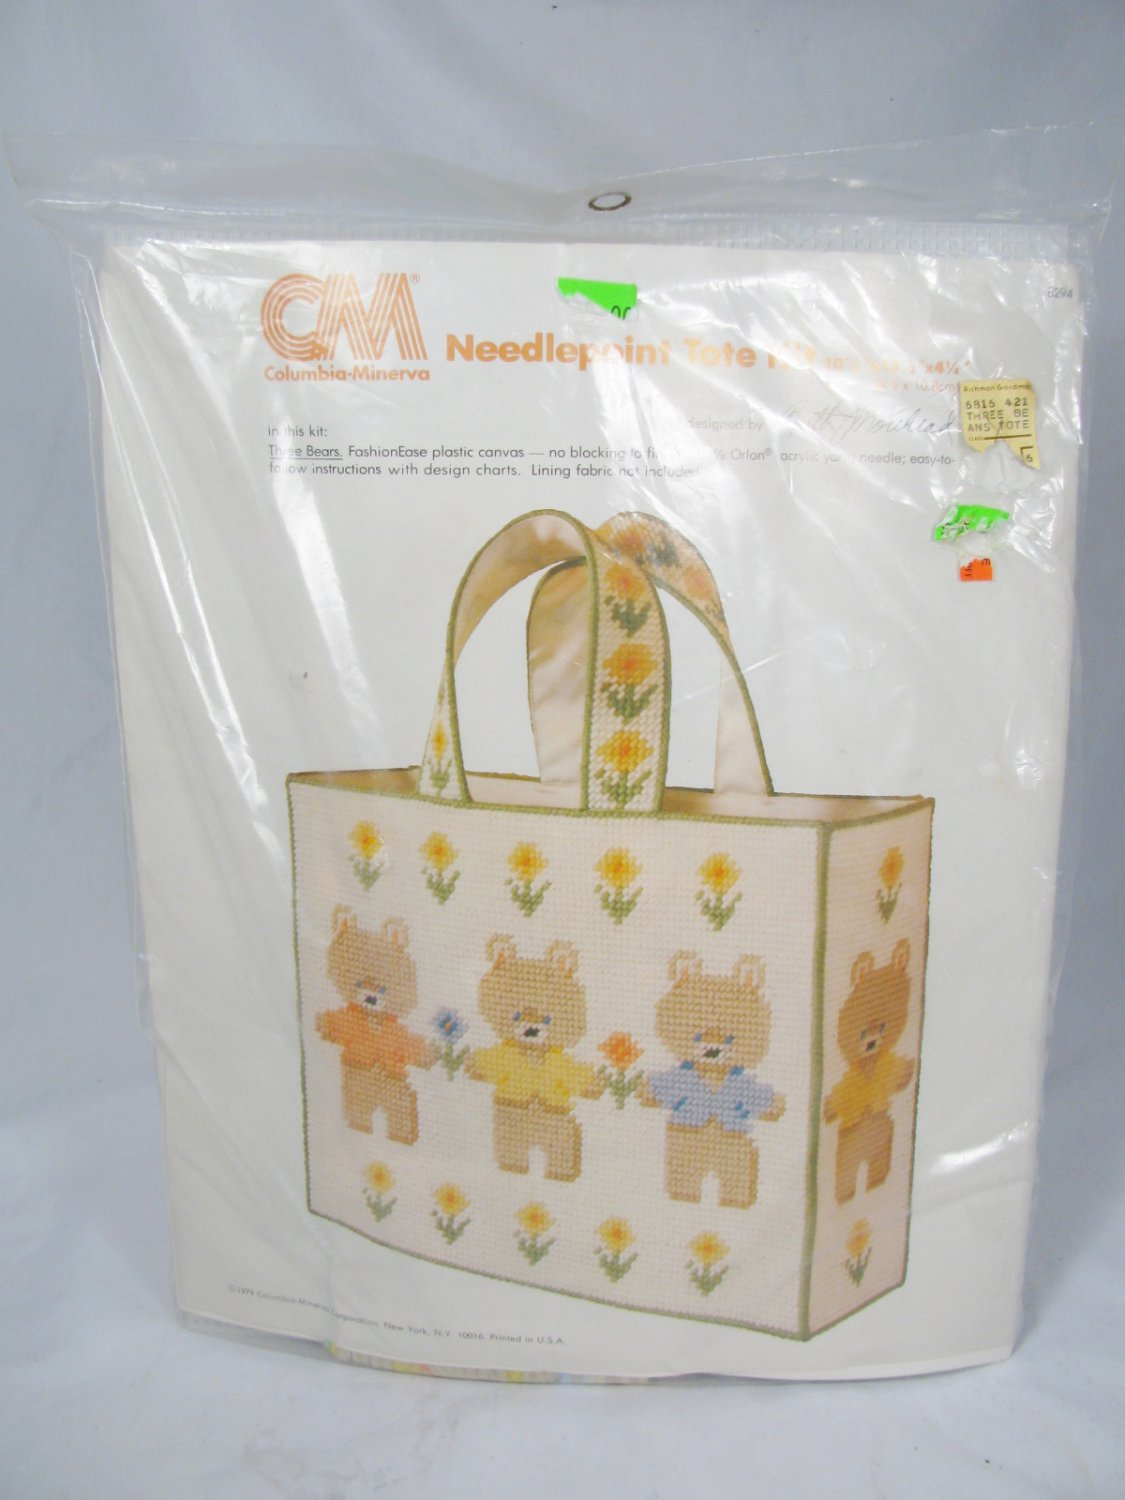 Columbia Minerva Three Bears Plastic Canvas Needlepoint Tote Kit 1979 NEW